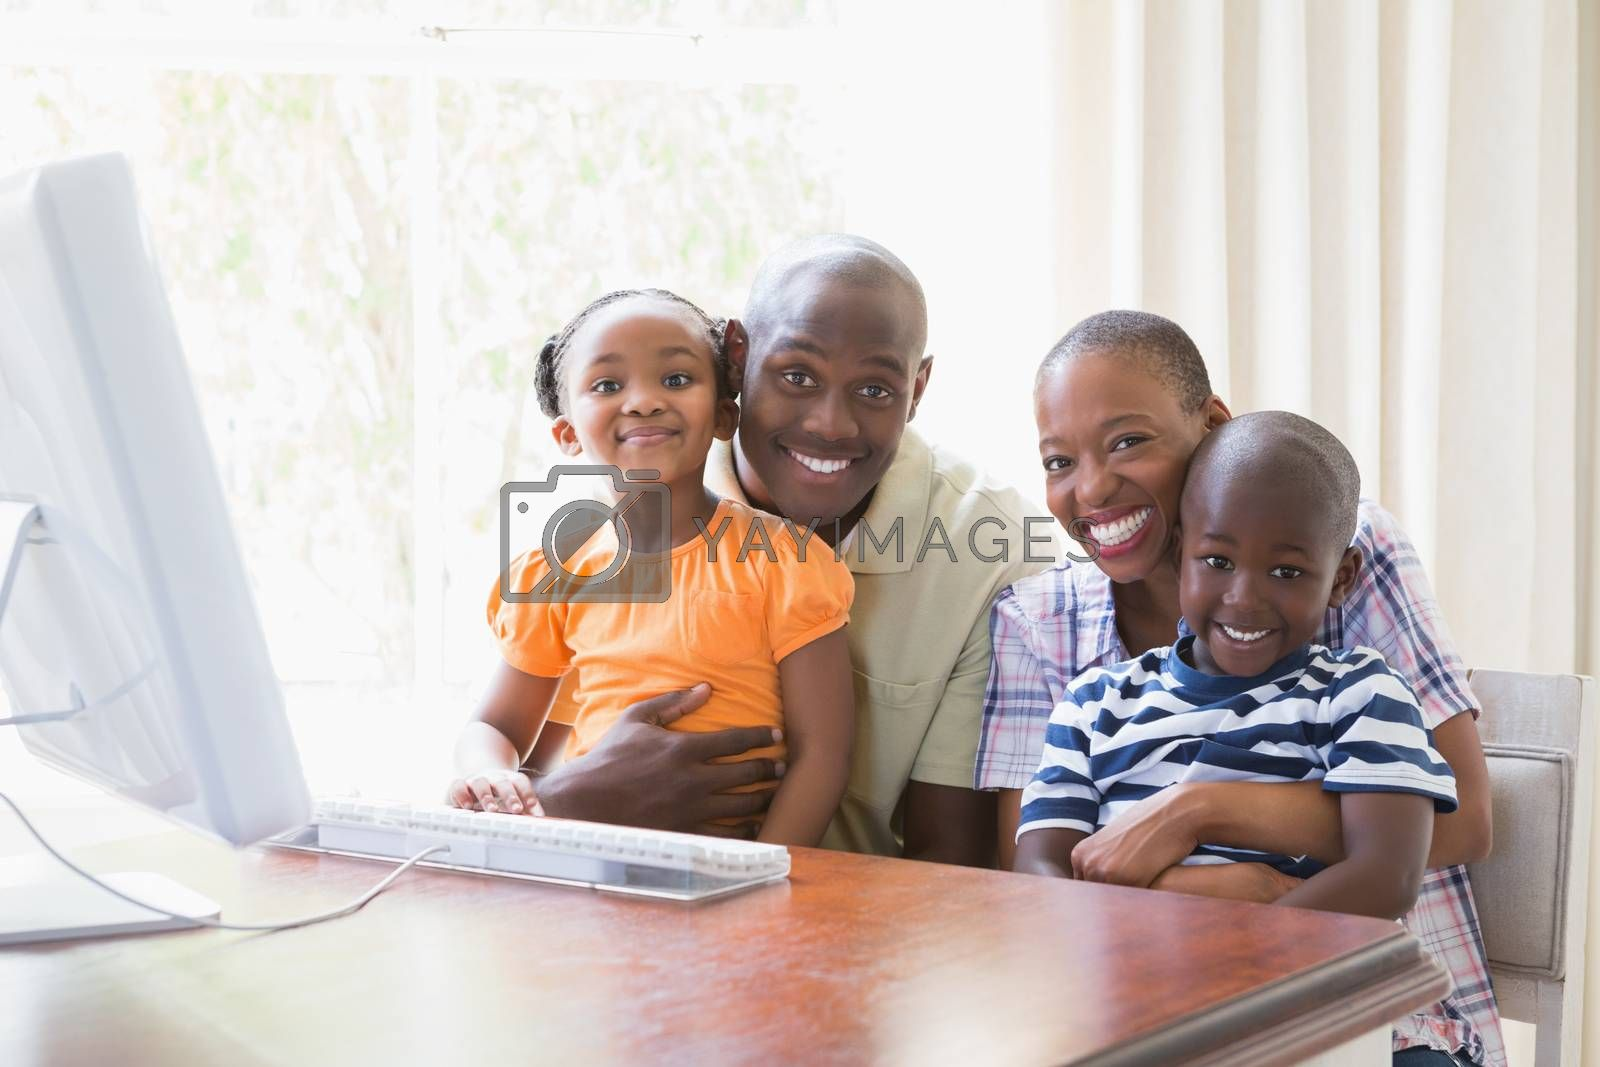 Royalty free image of Portrait happy smiling family using computer by Wavebreakmedia